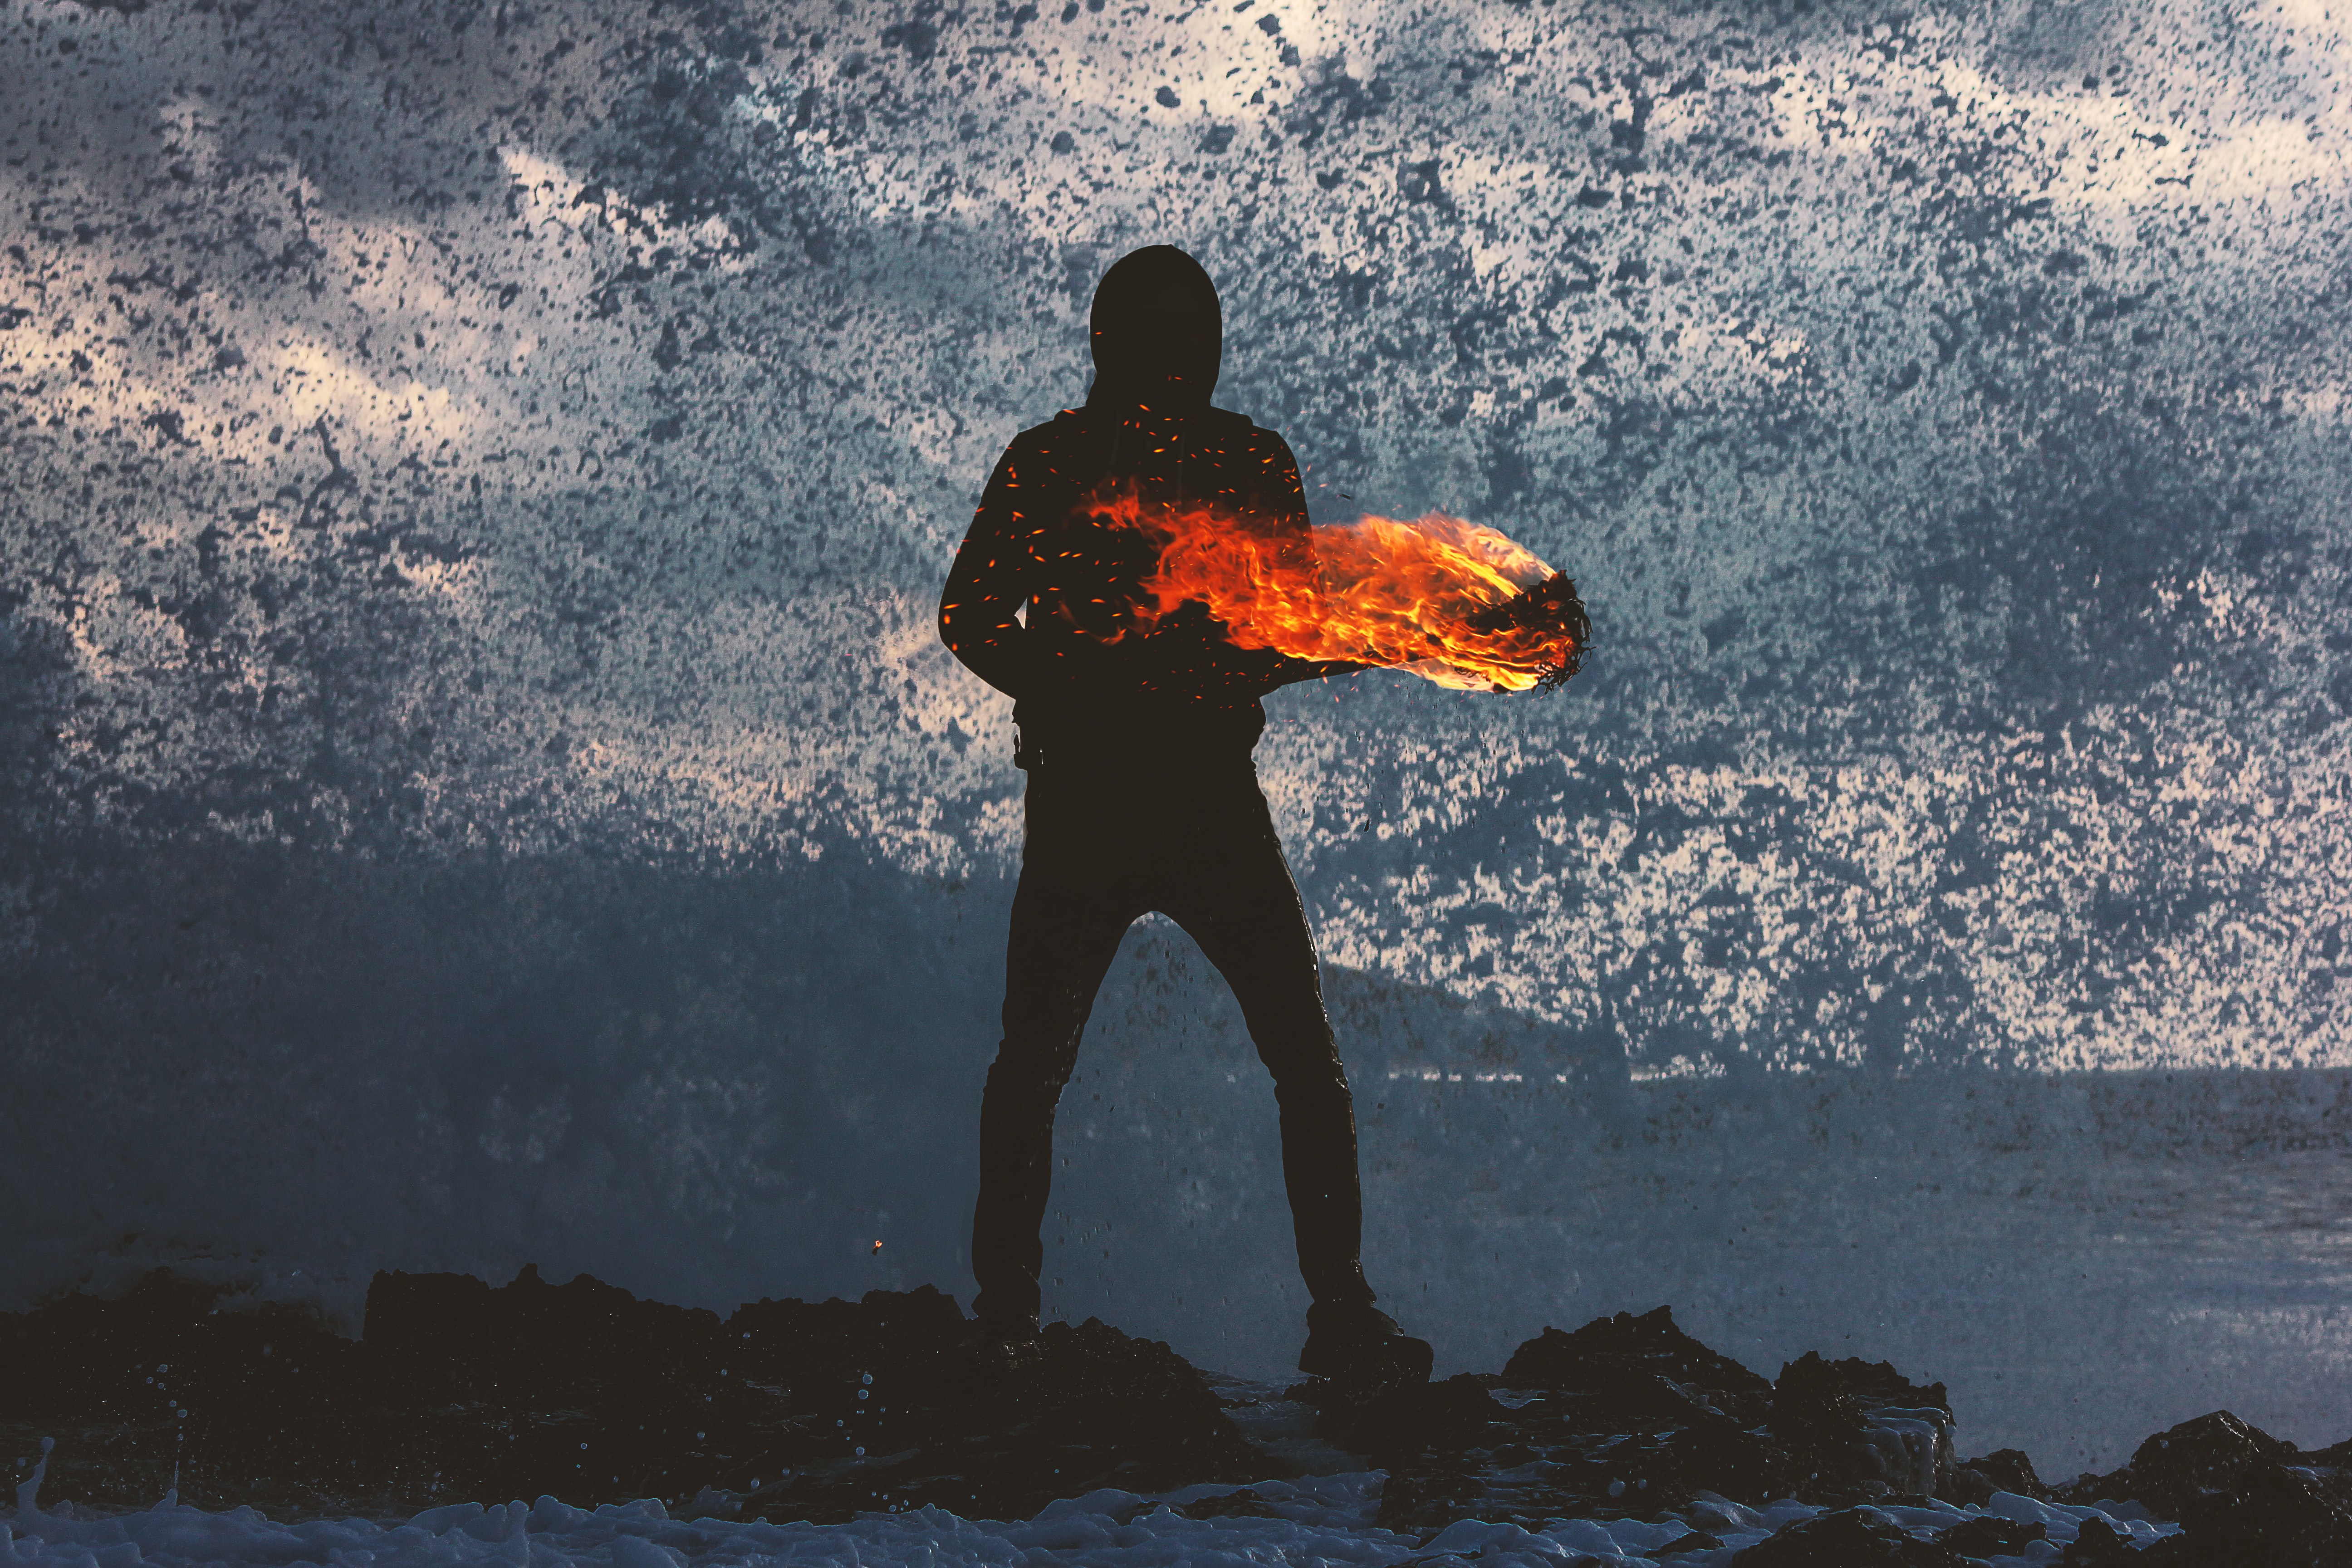 silhouette of person standing holding torch